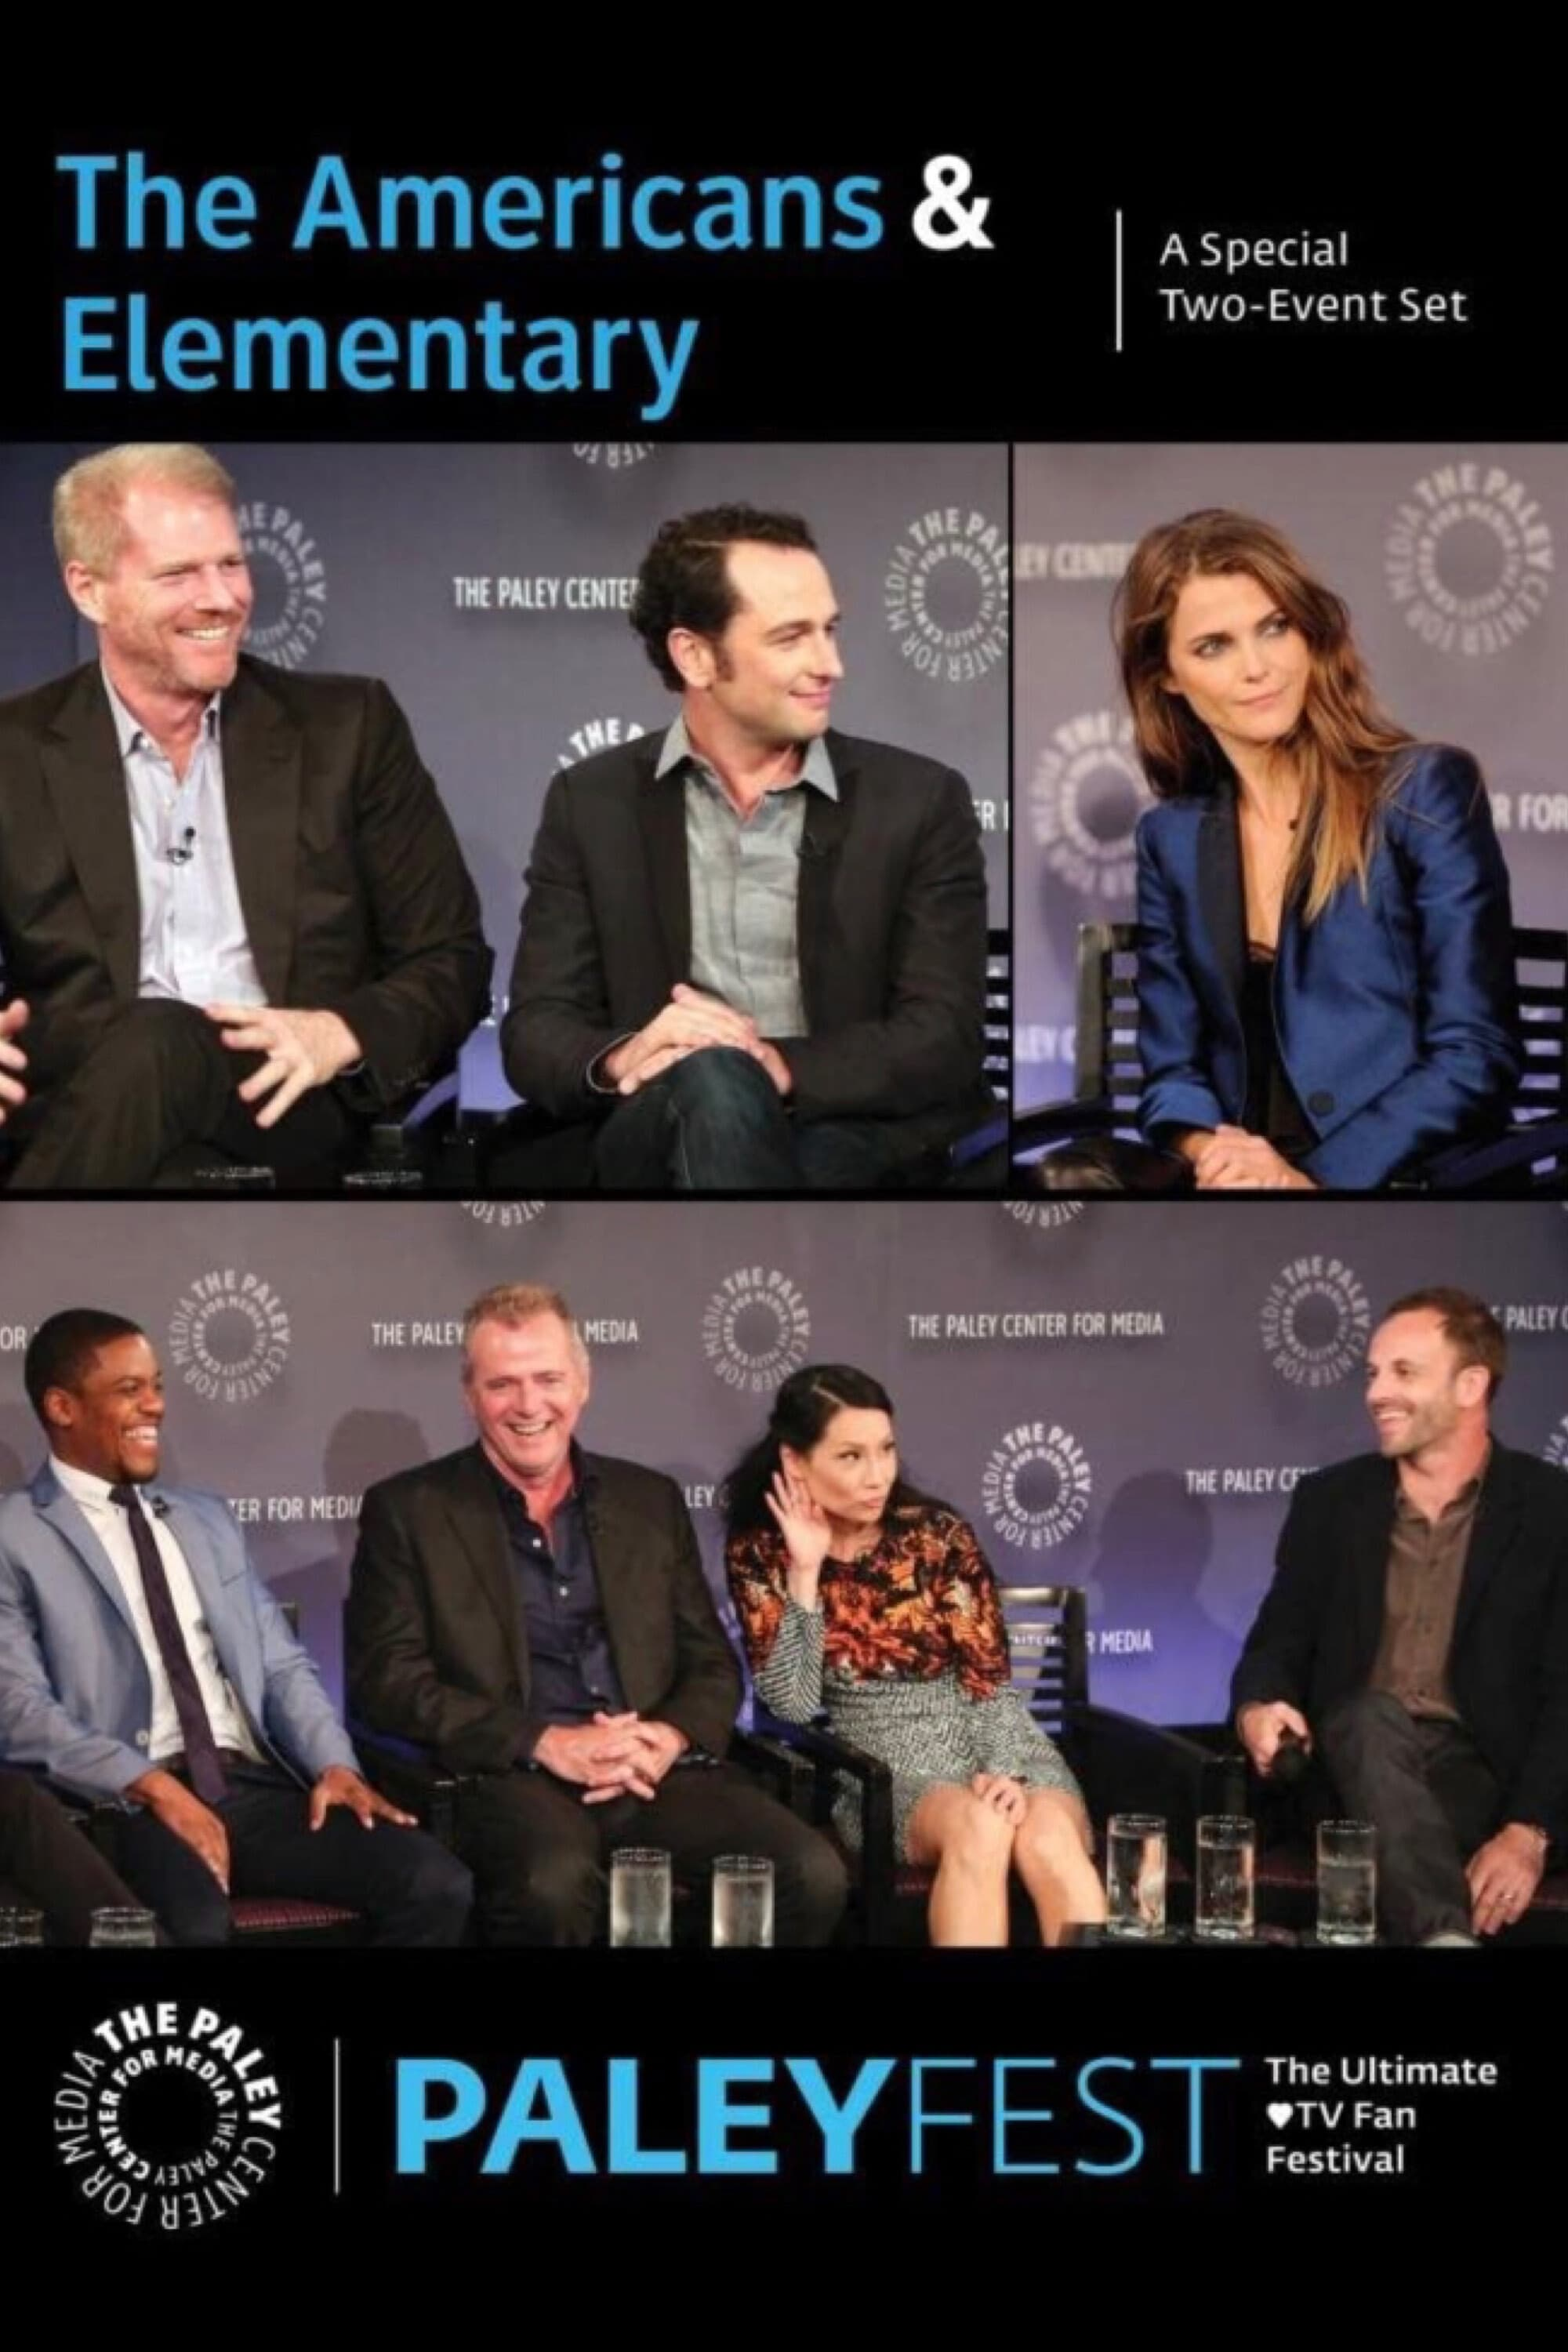 The Americans & Elementary: Cast and Creators Live at PALEYFEST: A Special Two-Event Set (2014)